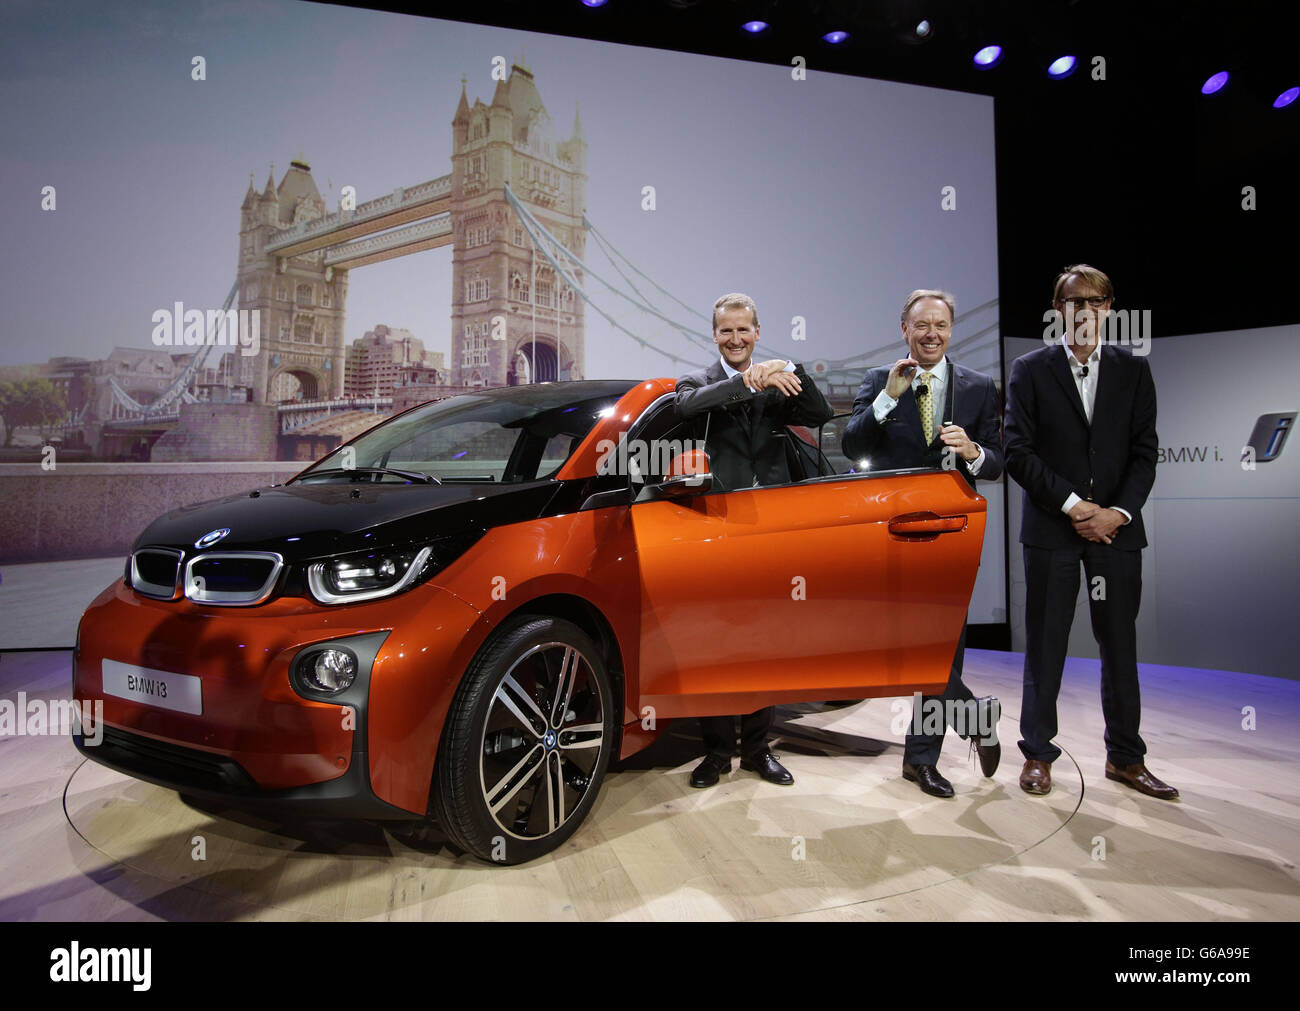 Bmw Electric Car Launch Stock Photo 107176986 Alamy